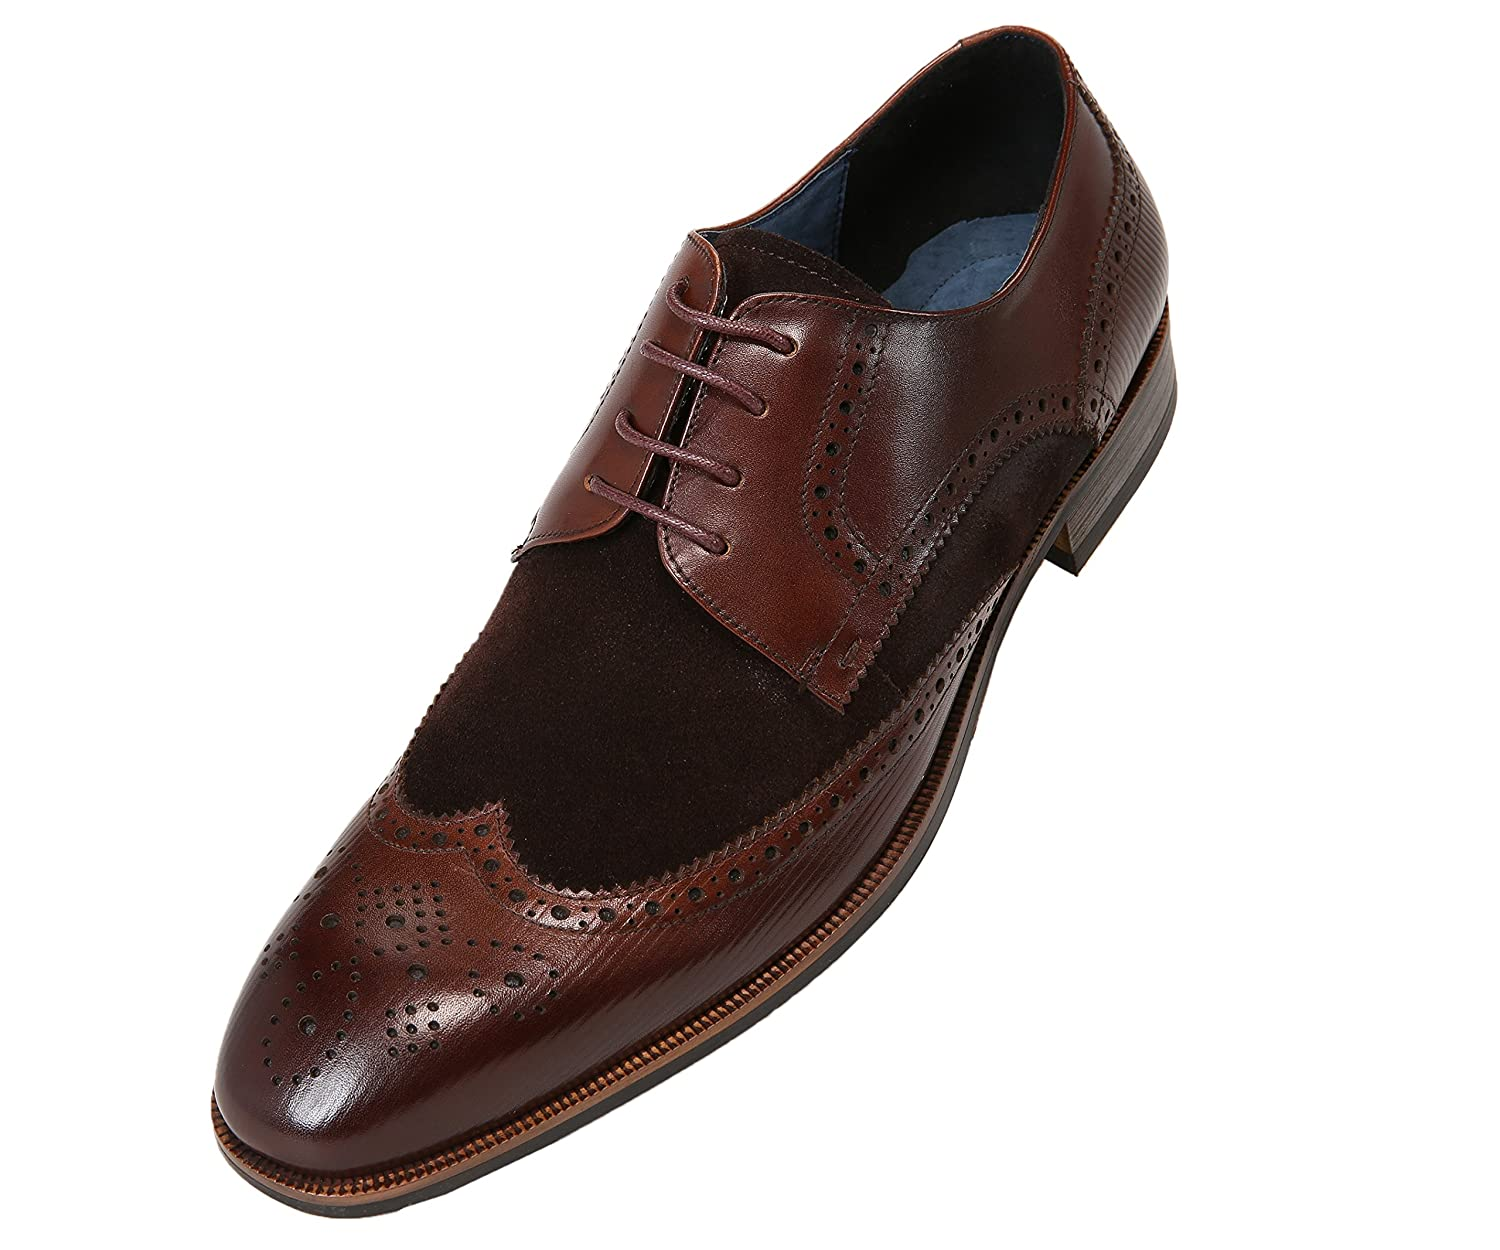 802efbd98443 BEAUTIFUL DESIGN: Style AG1034 - Rich brushed calf leather is accented with  classic waxy suede on this mens wingtip oxford dress shoe